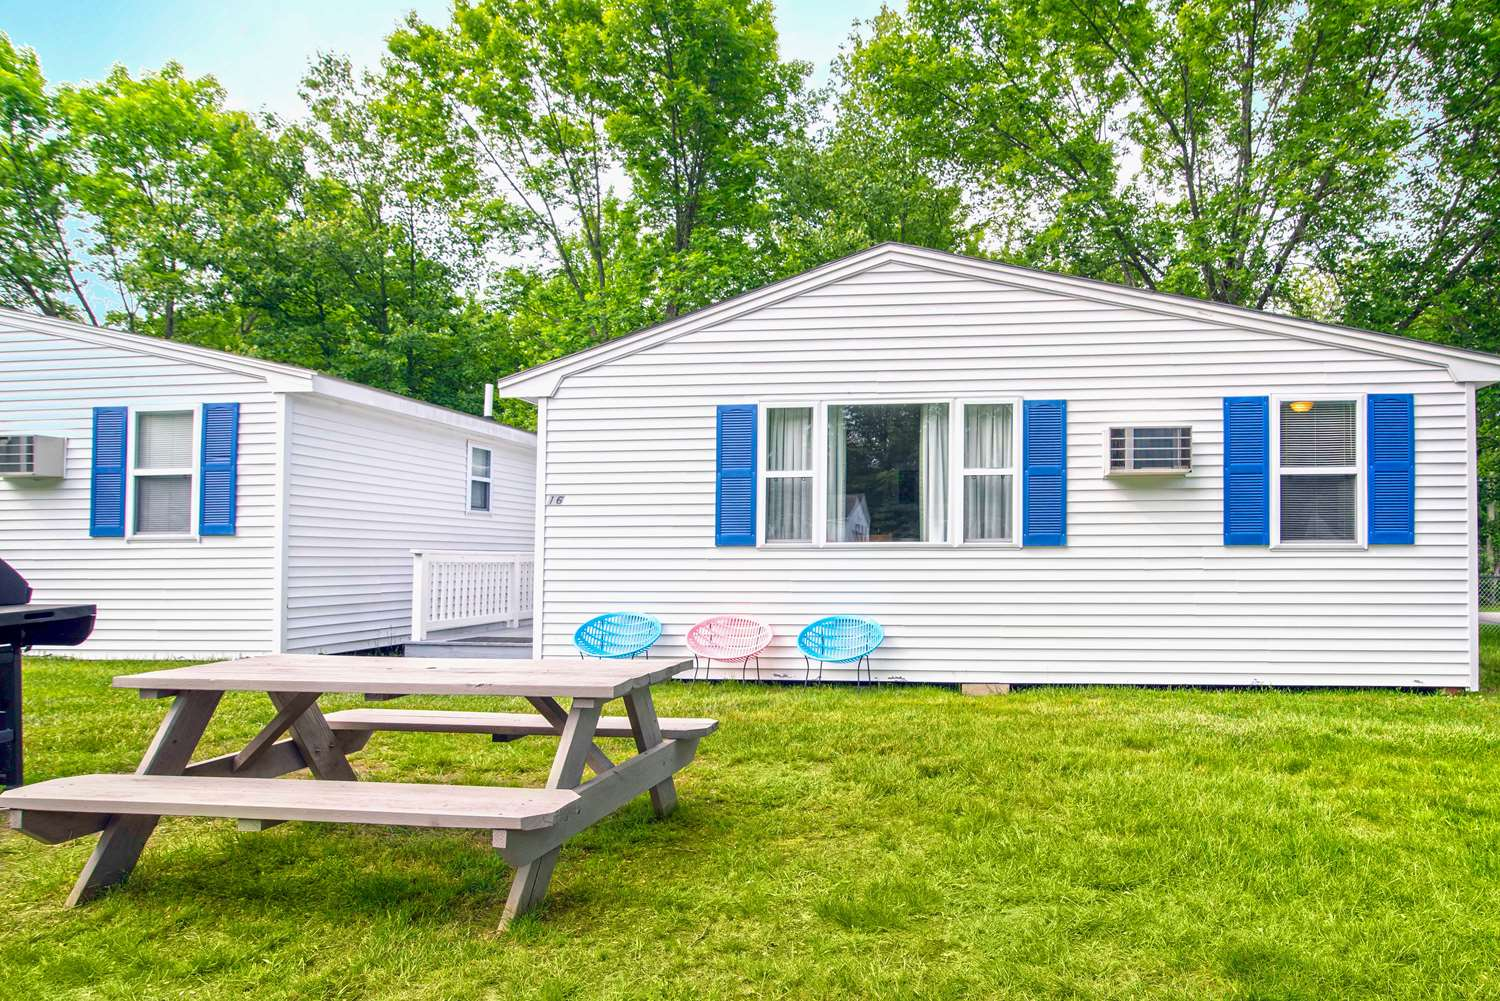 rent wells maine cottages beach house oceanfront states rooms for in united